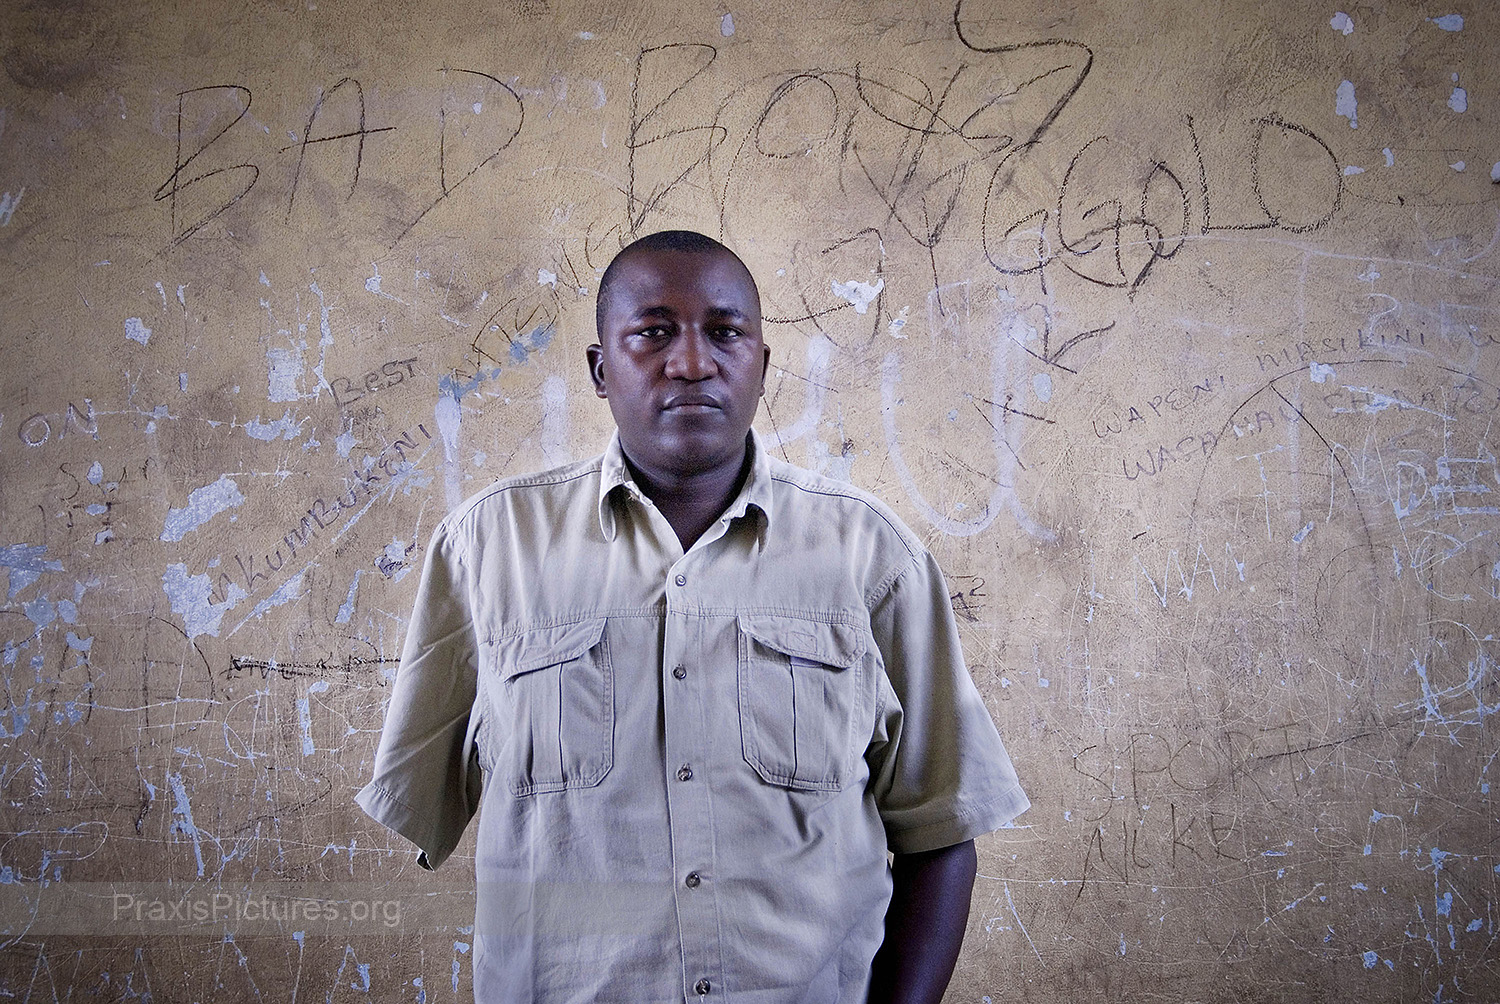 "DEUS - Deus had worked in the Bulyanhulu mine as a supervisor for five years when he was in an accident in 2006 where a big rock fell on him. His coworkers pulled him away in time to save his life before more rocks came falling down. Barrick's Bulyanhulu Gold Mine boasts  ""one of the most up-to-date and well-equipped and staffed medical clinics in Tanzania … being operated not only for the benefit of employees and their families, but also to provide assistance to the immediately surrounding communities.""   Despite these declarations, Deus had to be flown to Dar es Salaam waiting for a total of 18 hours before receiving any treatment. His arm eventually had to be amputated, but he vividly remembers the doctor telling him that if he had received treatment earlier it would have been a very simple procedure to save his arm which any trained doctor would have been able to perform.  For a career-ending injury, Barrick eventually agreed to give him 10million shillings (9,000CAD) in compensation, far less than the 600million shillings (550,000CAD) Deus had estimated he should receive based on international standards. Barrick made several promises to him, including that he would get a plastic prosthetic arm which they flew him to South Africa for. But when he tried on the arm he found that it was only 3% functional and that they wanted to charge him 16million shillings (15,000CAD), which he could not afford."